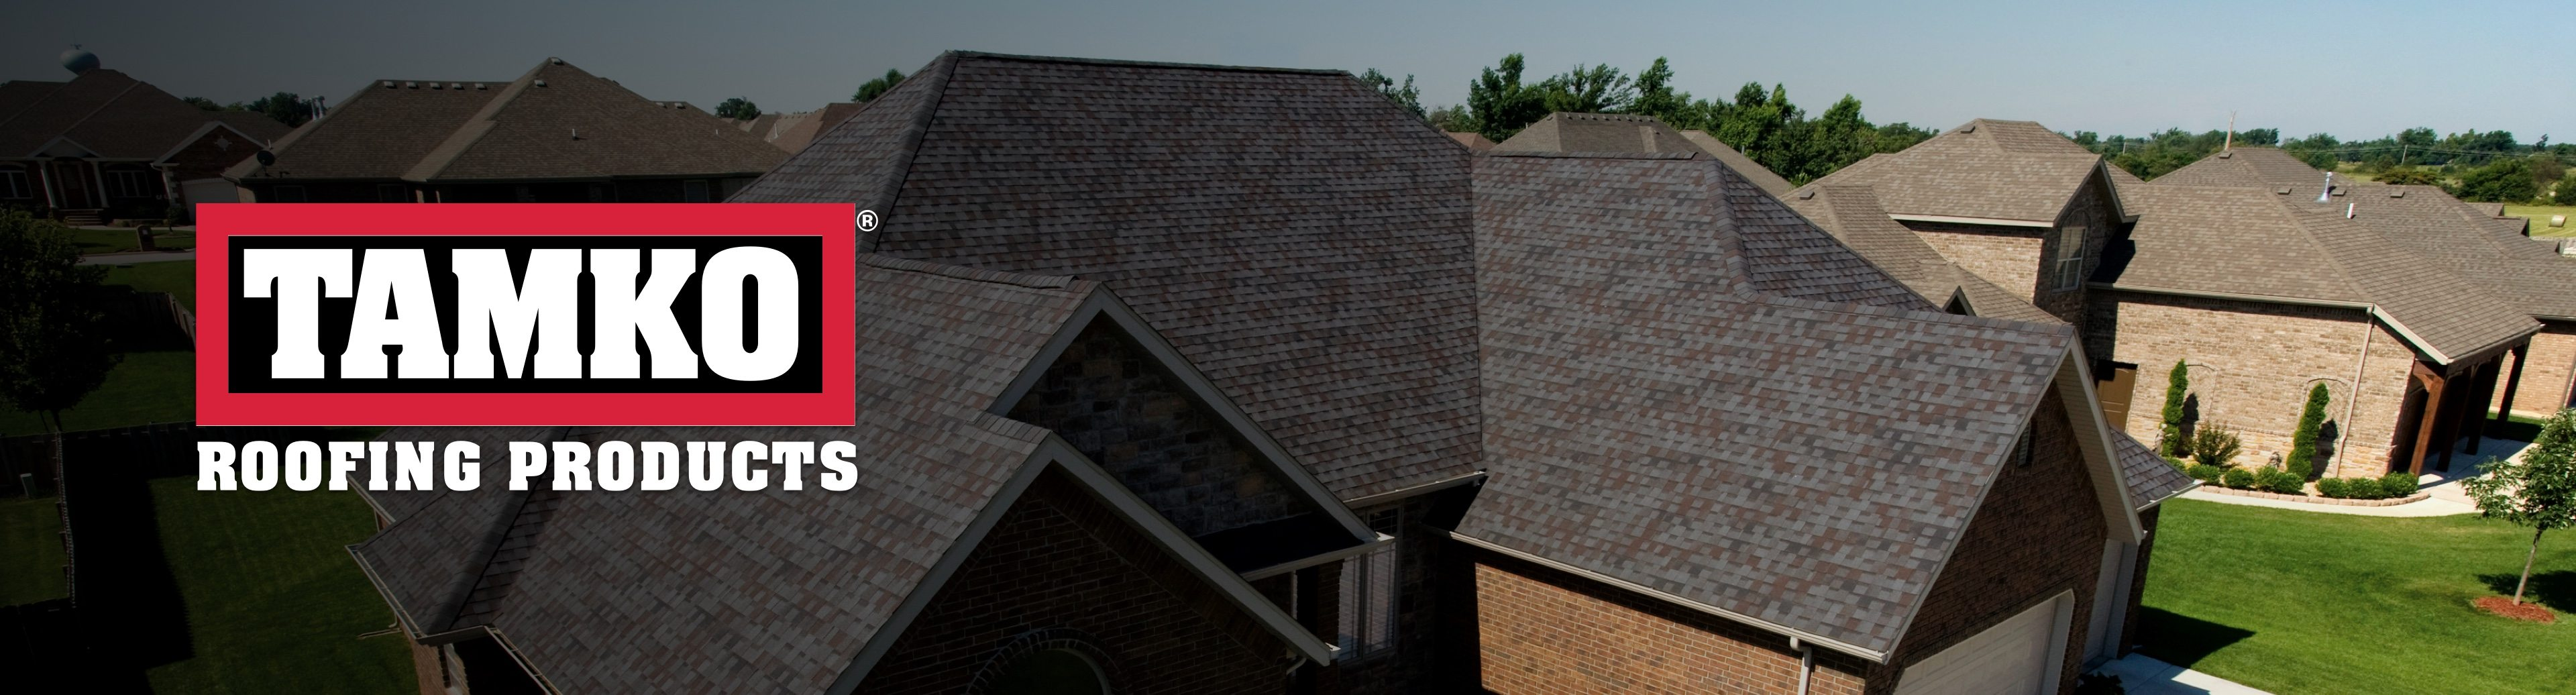 Tamko Roofing Products logo with roofing on house in background